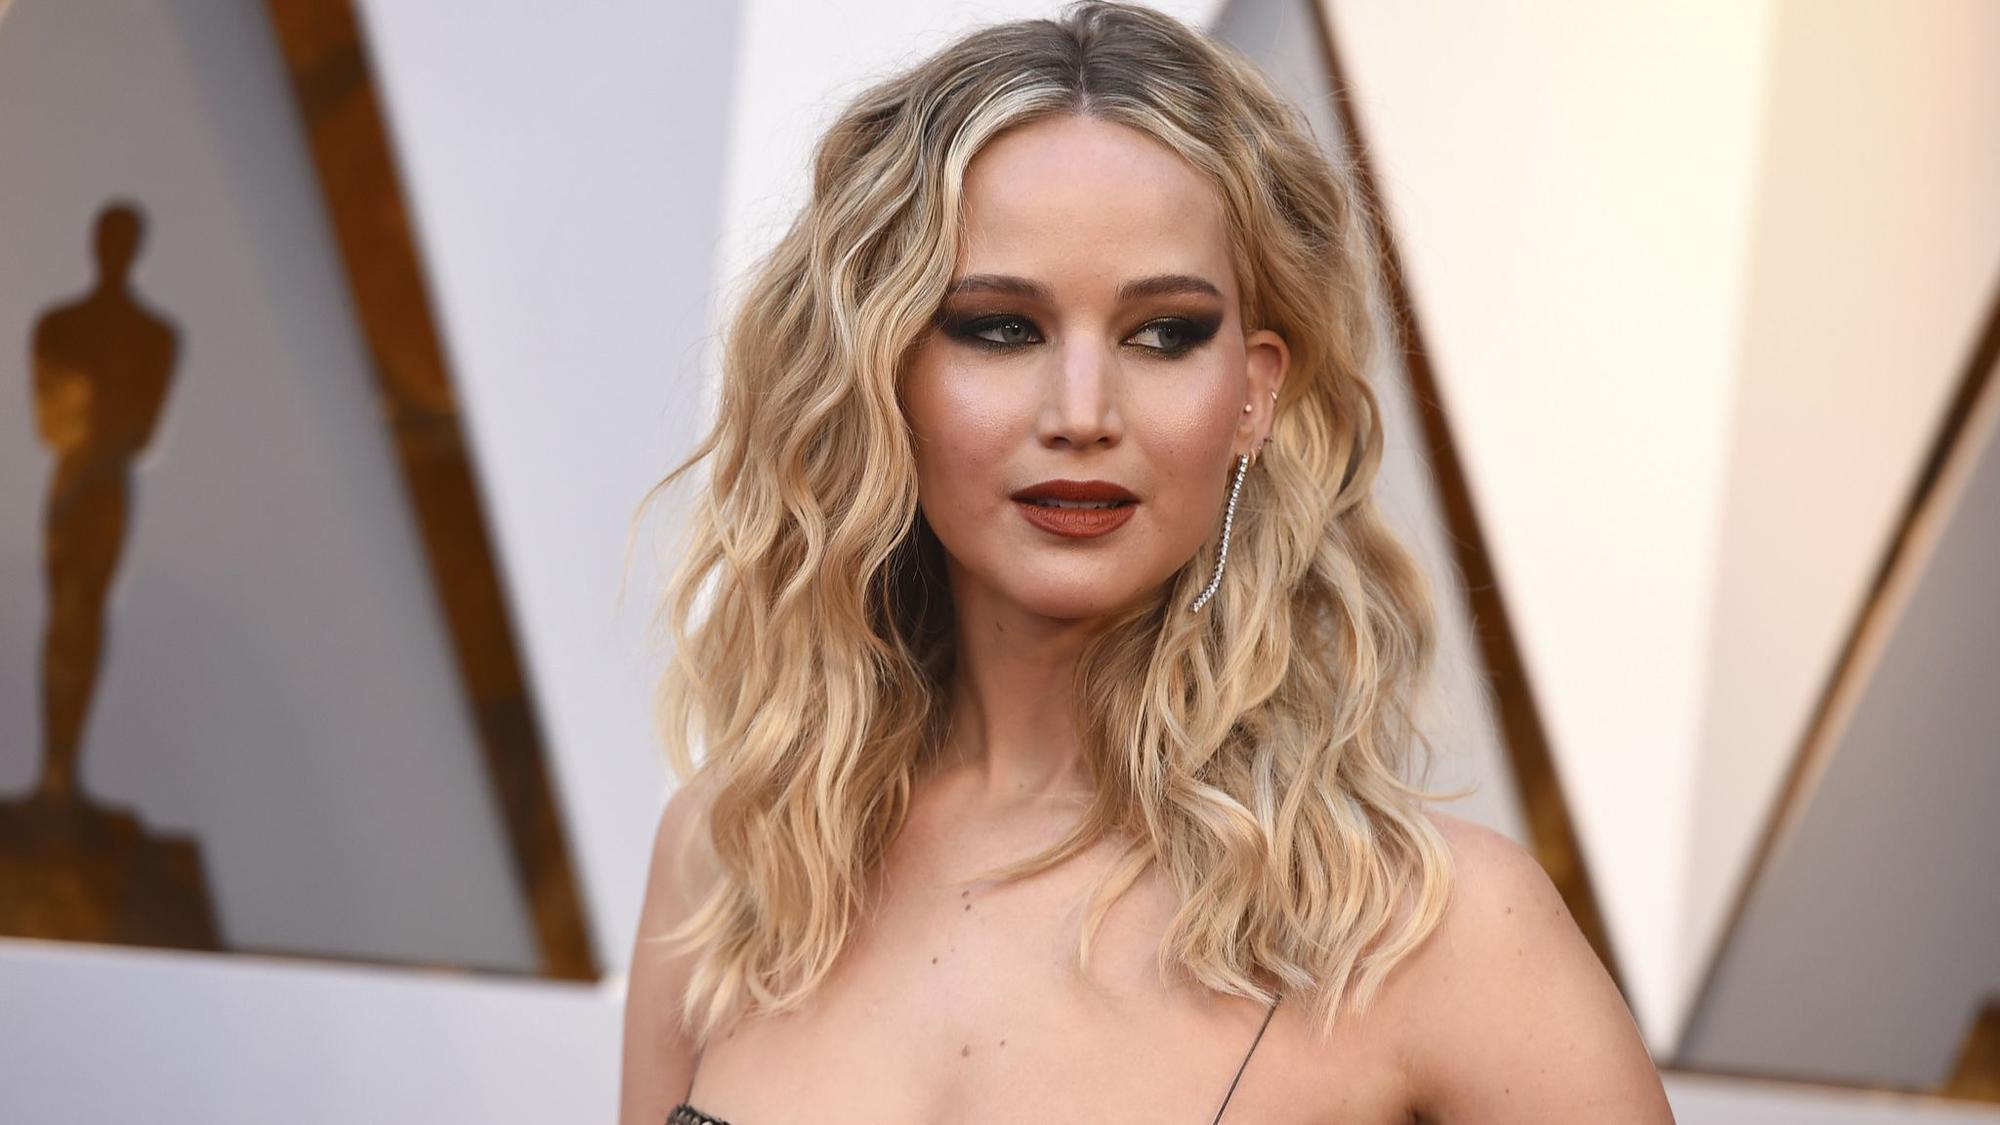 connecticut man admits to hacking accounts of jennifer lawrence